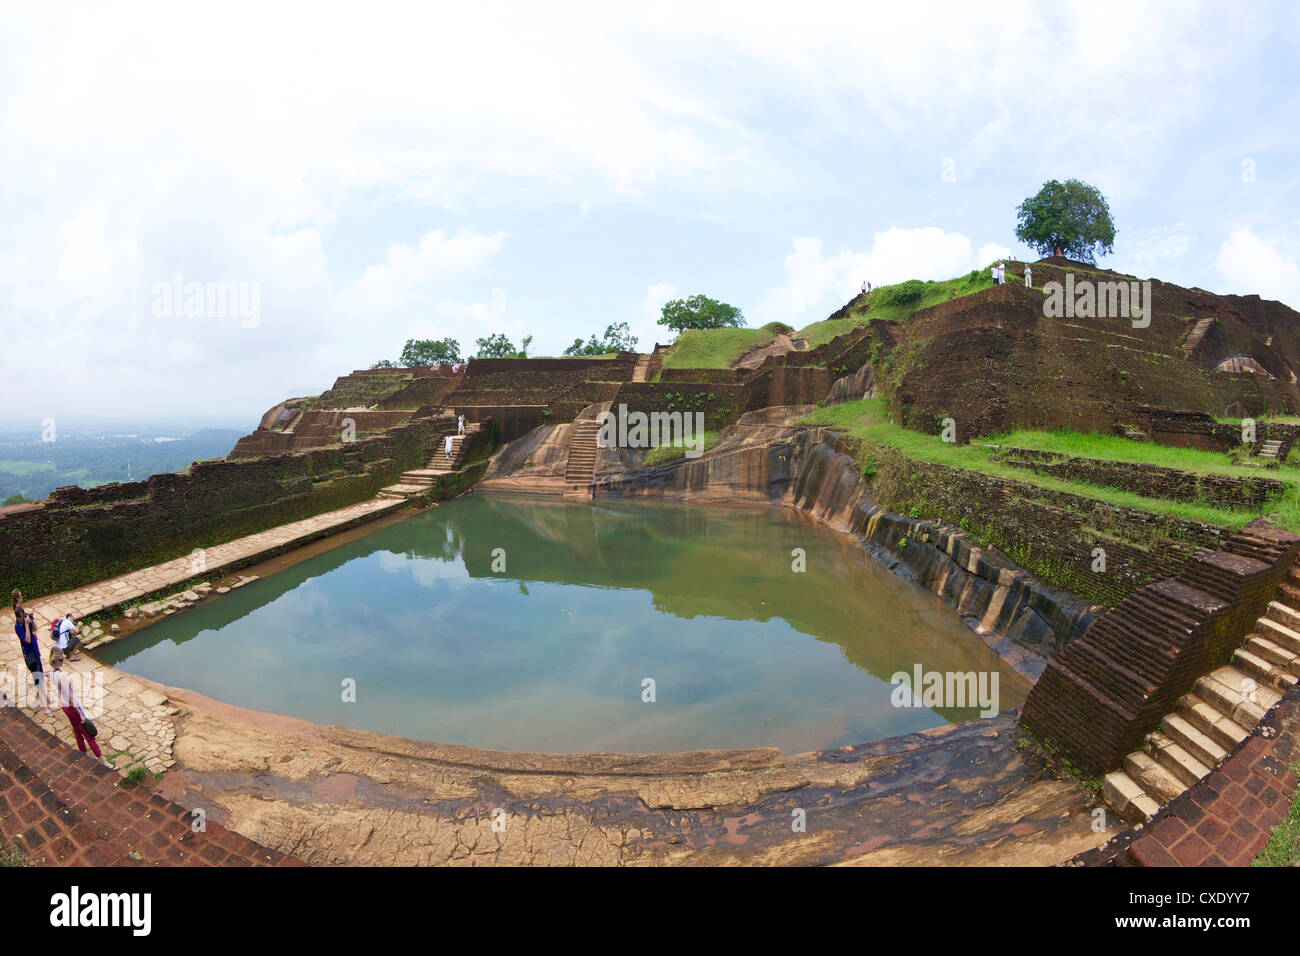 Royal Bathing Pool, Sigiriya Lion Rock Fortress,  5th century AD, UNESCO World Heritage Site,  Sigiriya, Sri Lanka, - Stock Image